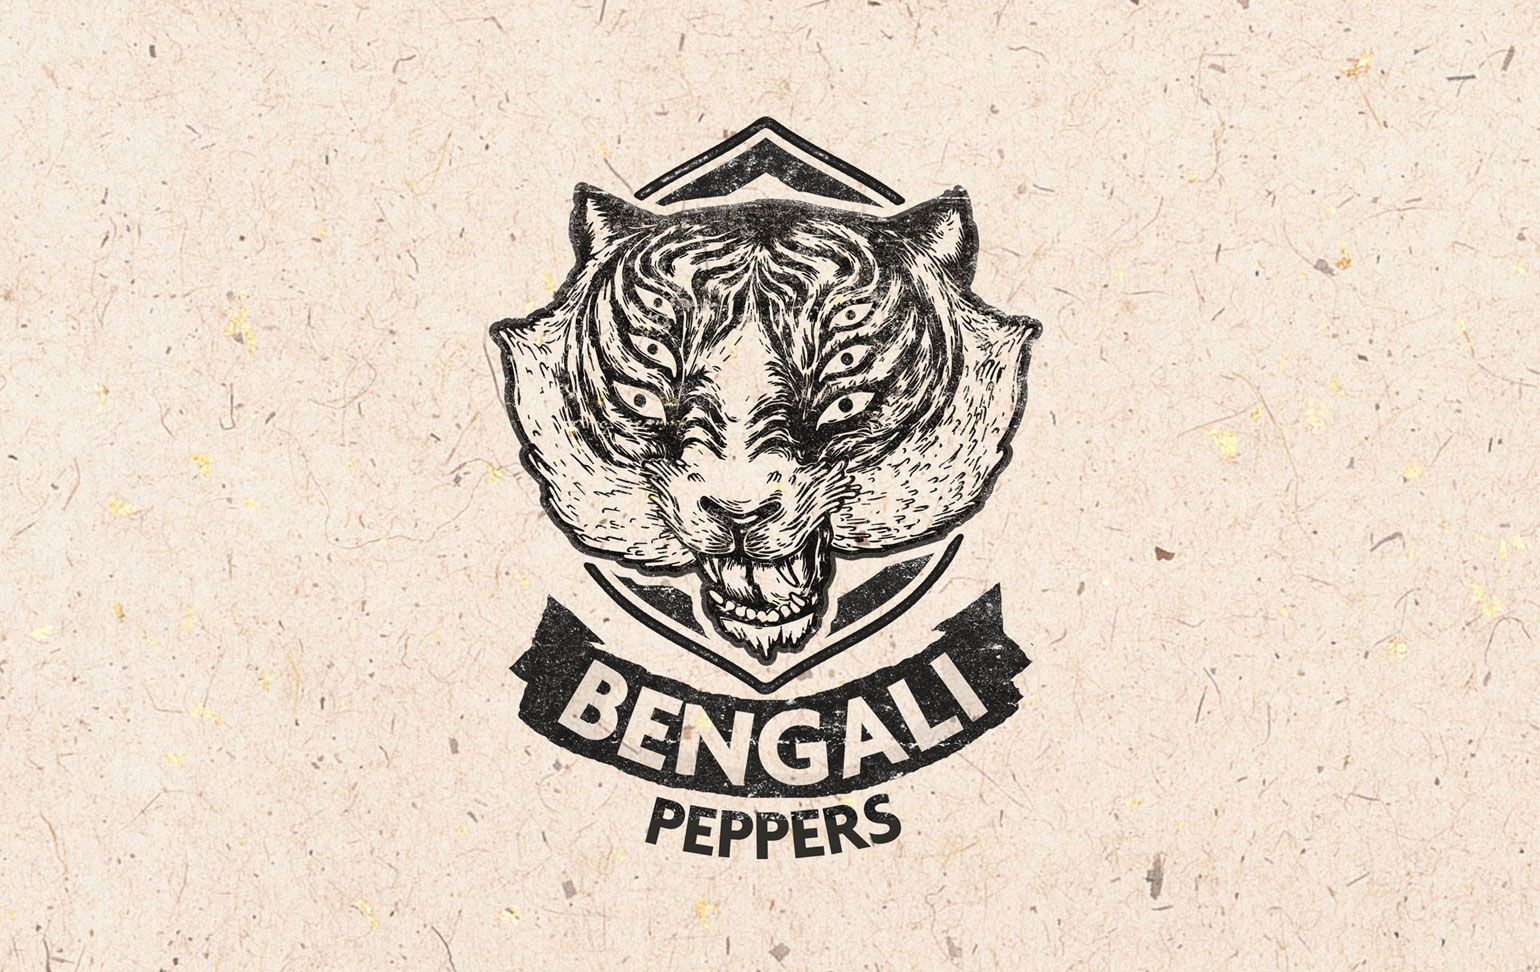 BENGALI PEPPERS